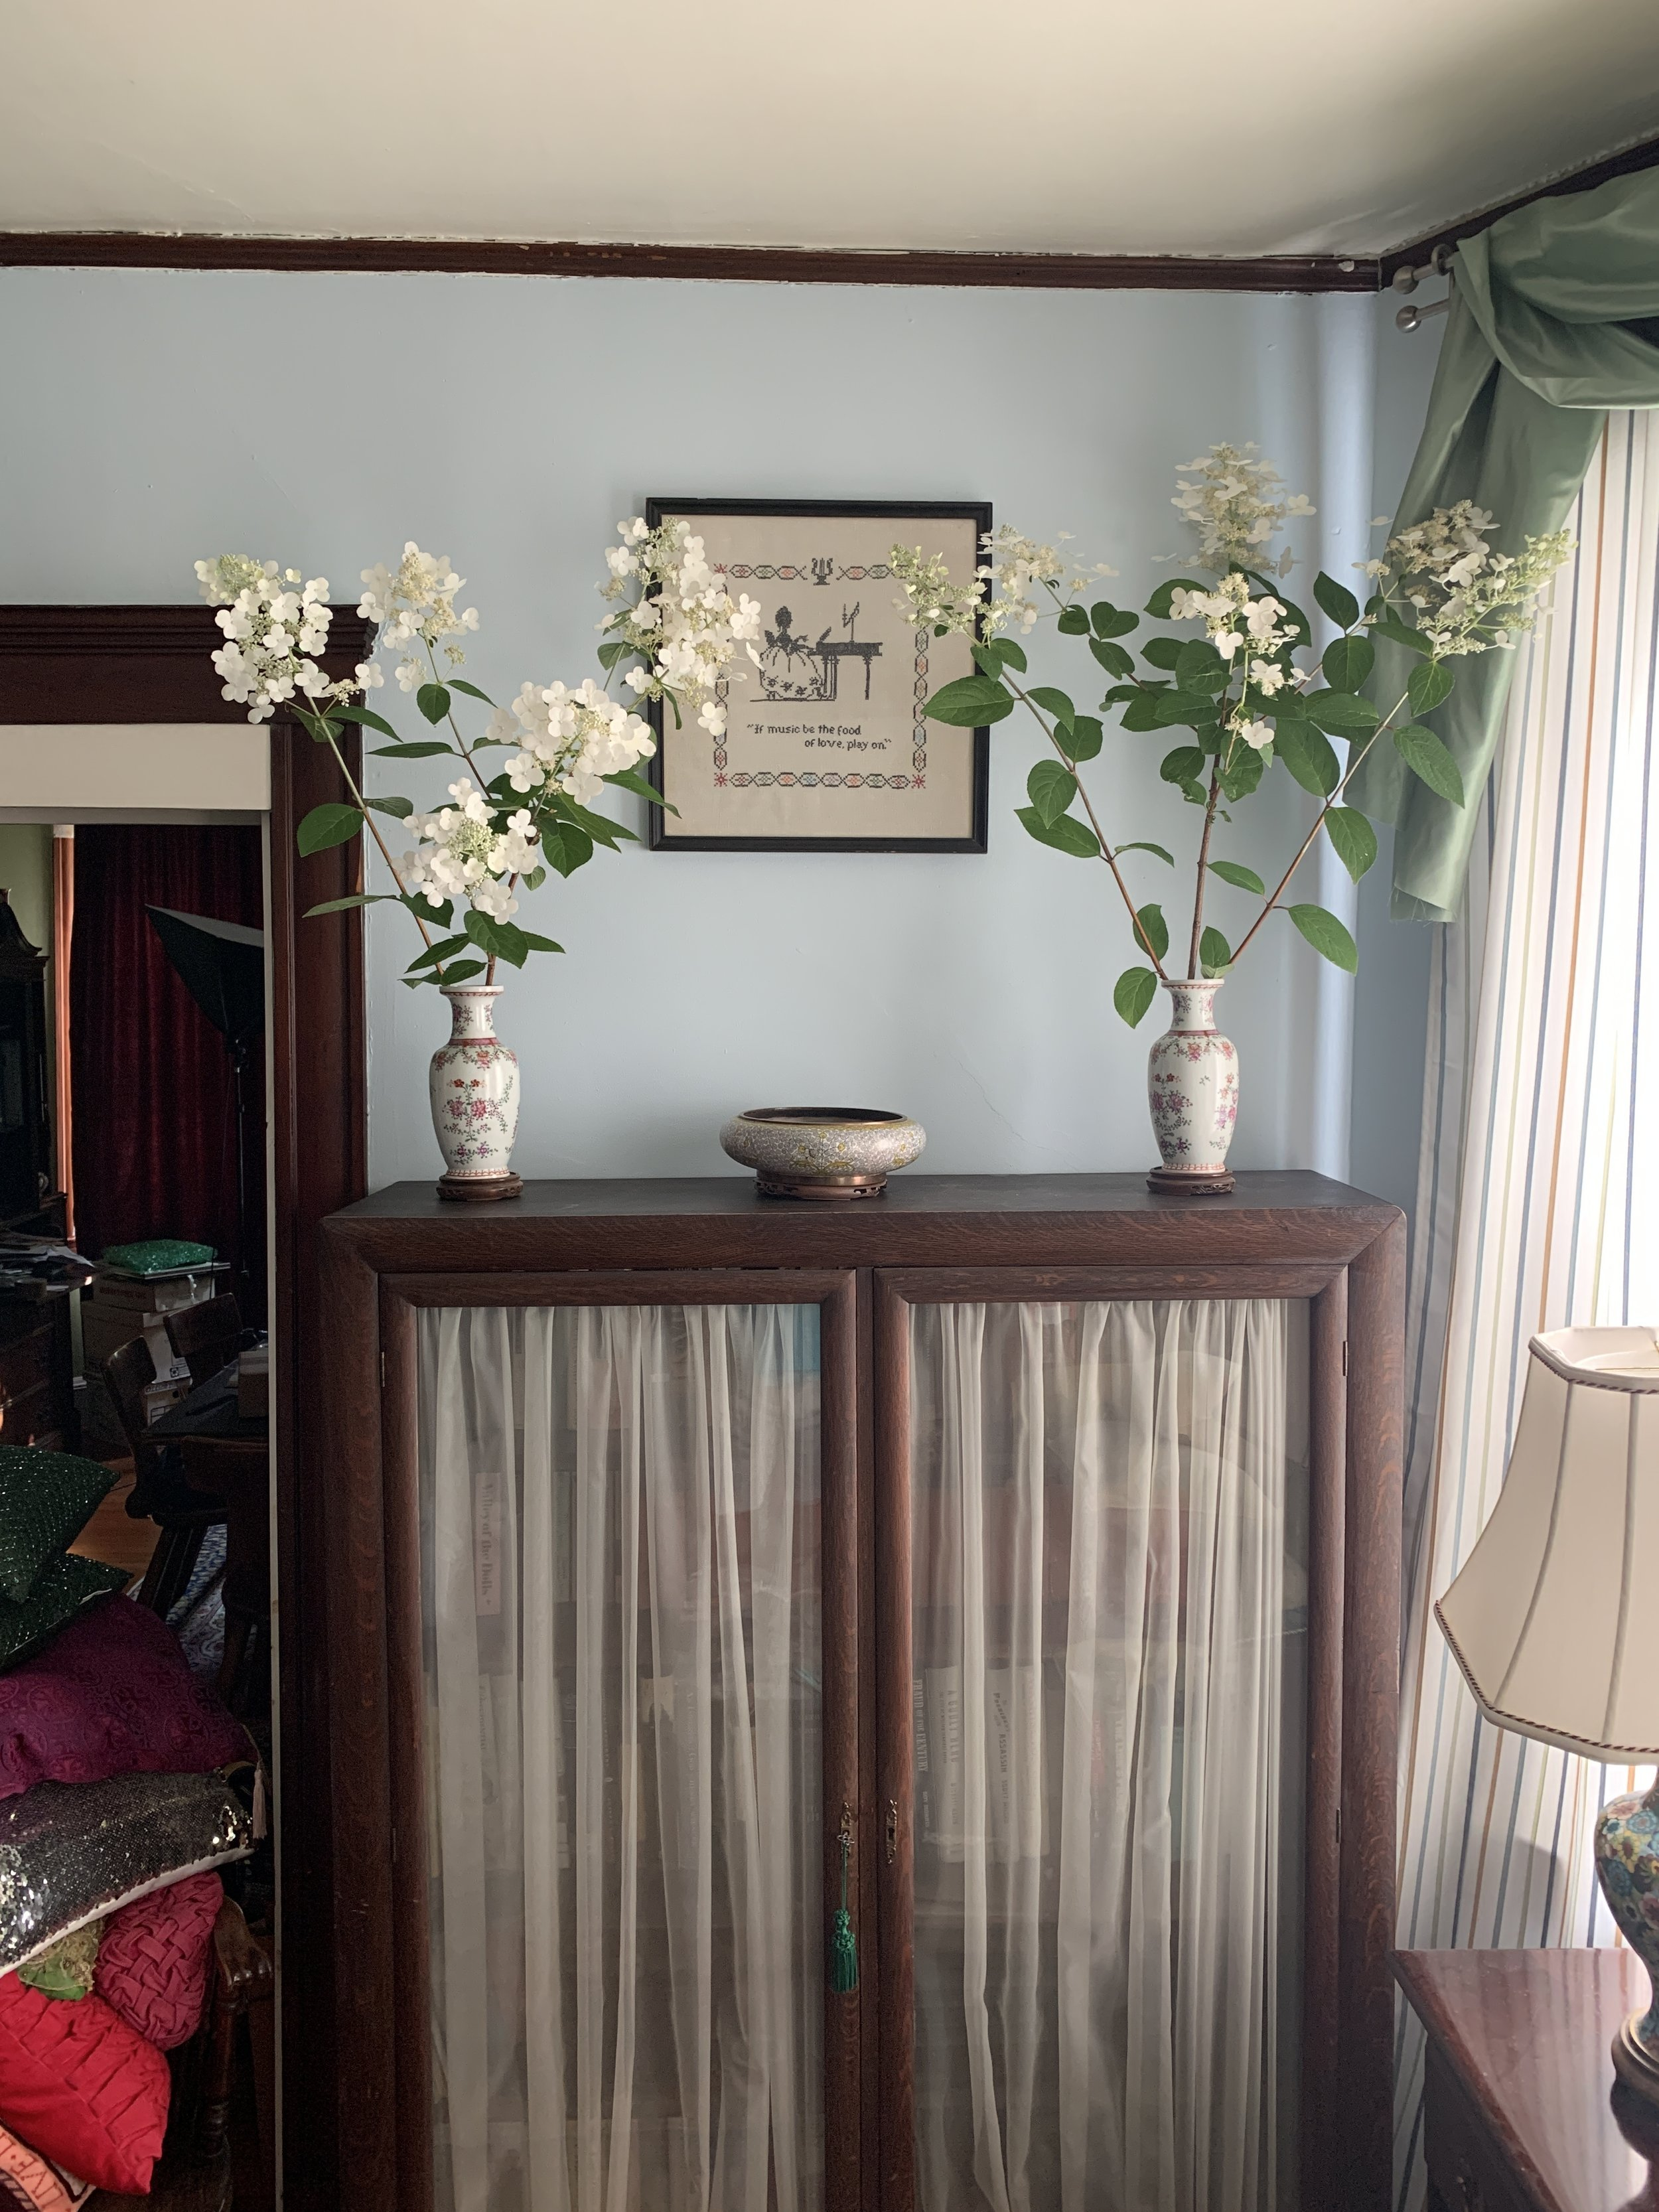 The cabinet was left behind in the first home my parents owned after their marriage. The vases were my grandmother's veiled in shadows on a high obscure shelf in her den. I always knew they should be more in the spotlight.